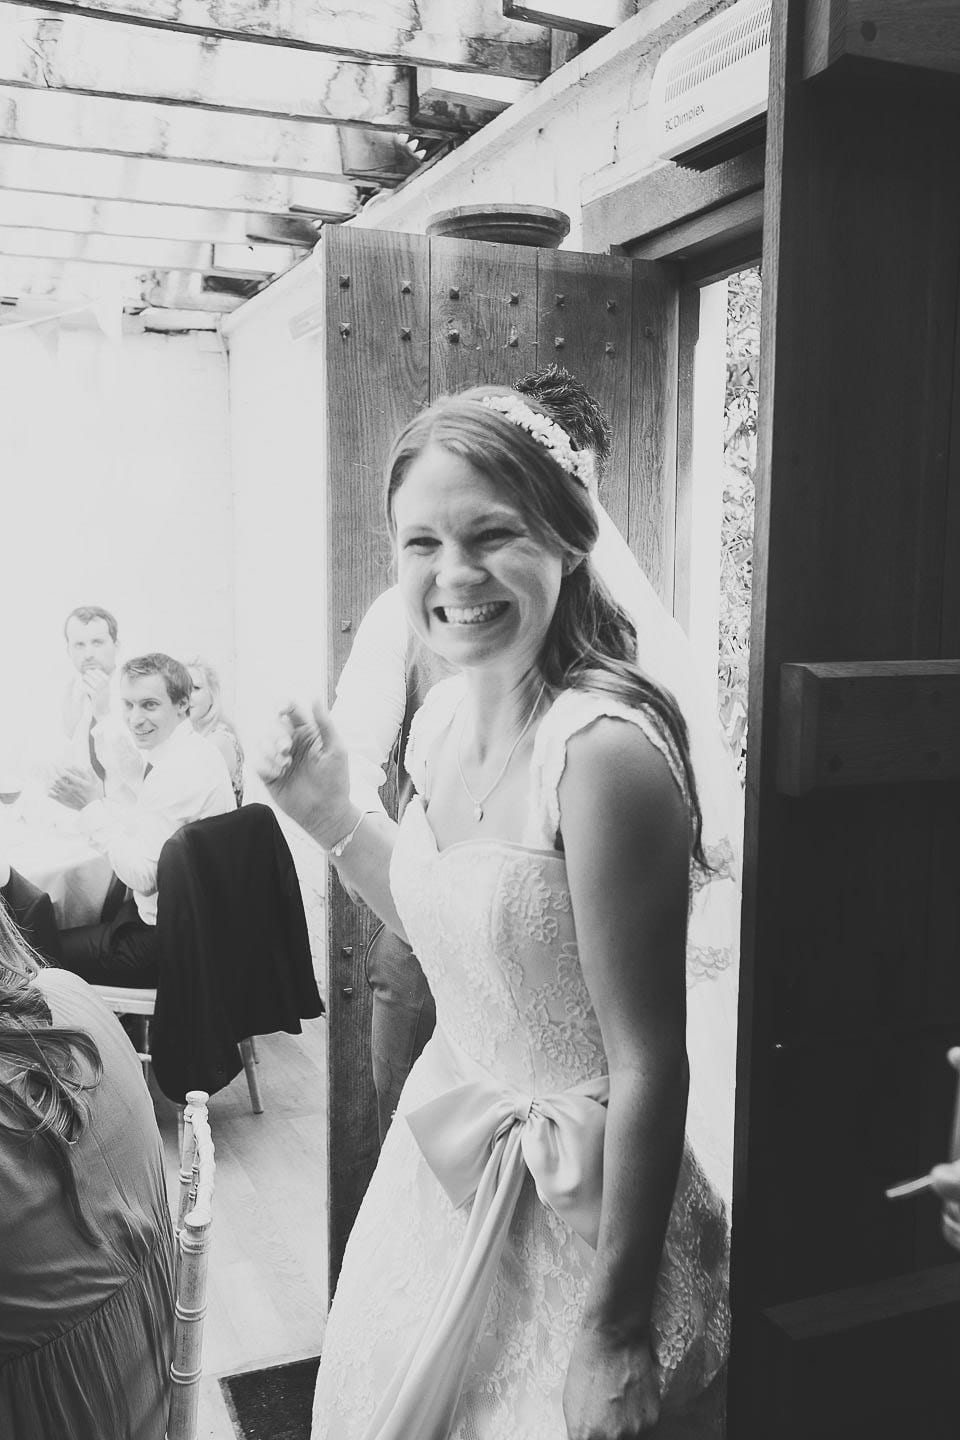 Excited bride and groom enter the room for their wedding breakfast at Abbey House Gardens